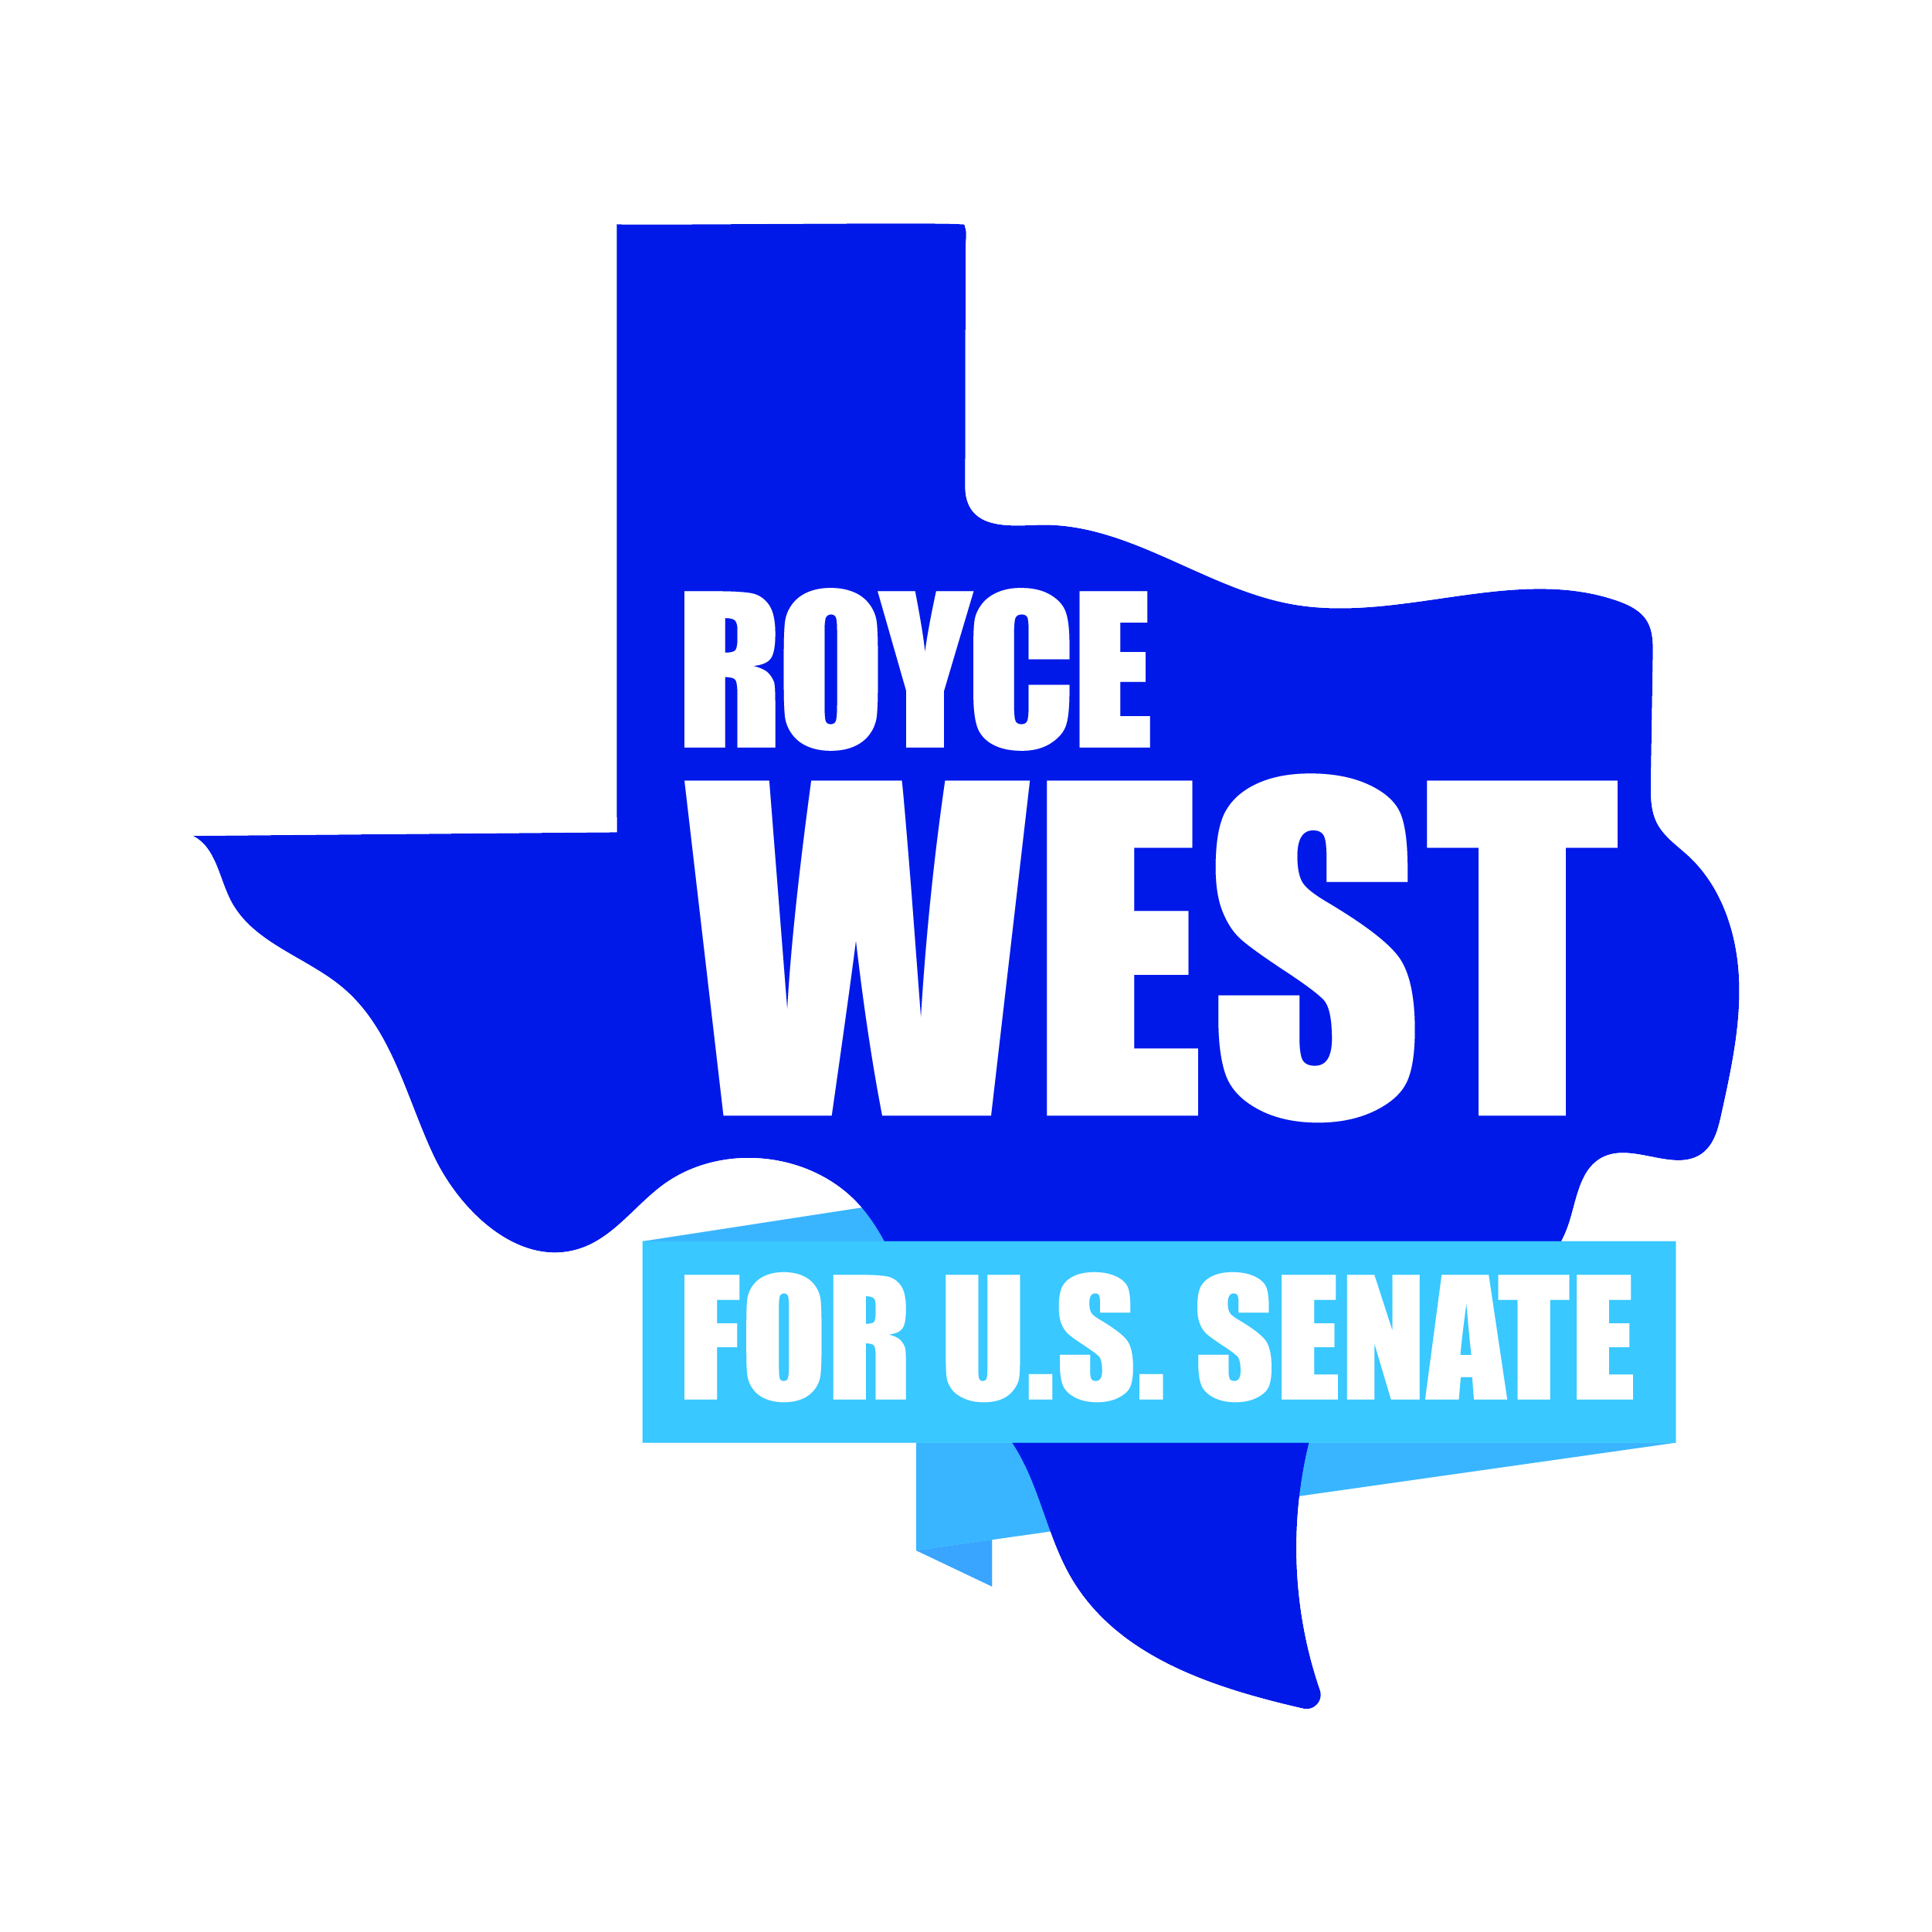 Royce West